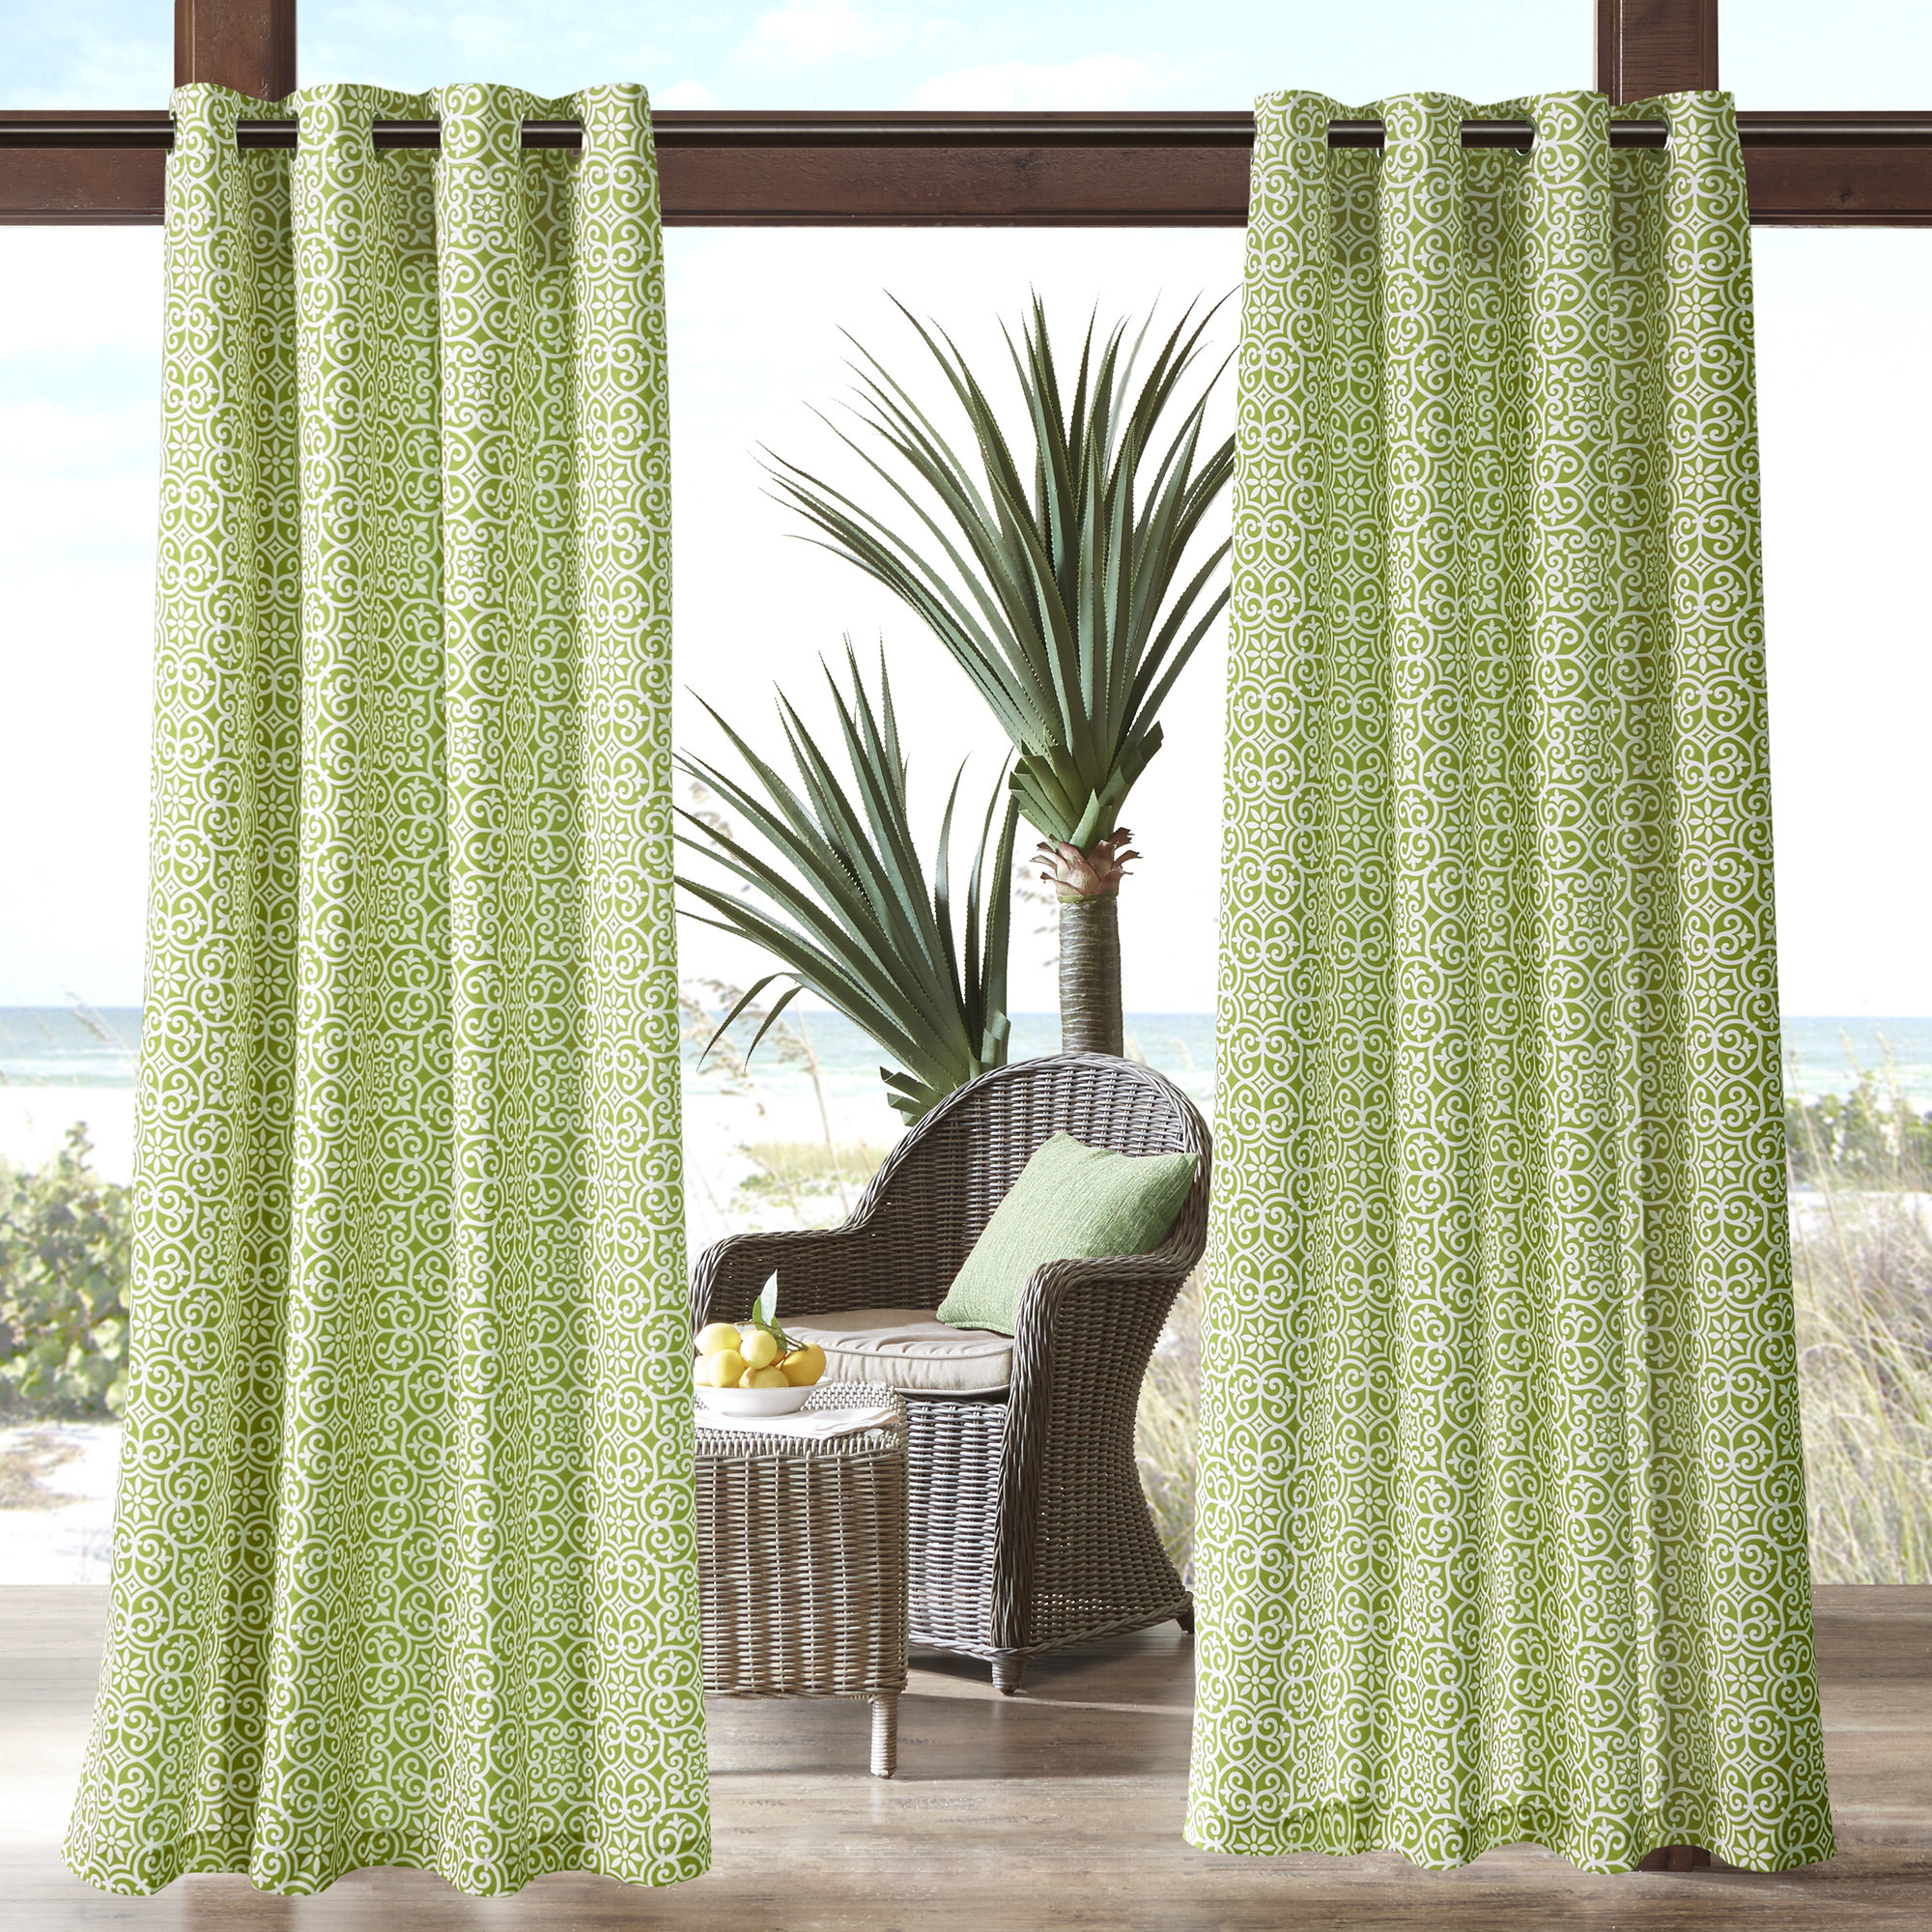 Willette Semi Sheer Outdoor Grommet Single Curtain Panel Intended For 2021 Single Curtain Panels (View 13 of 20)